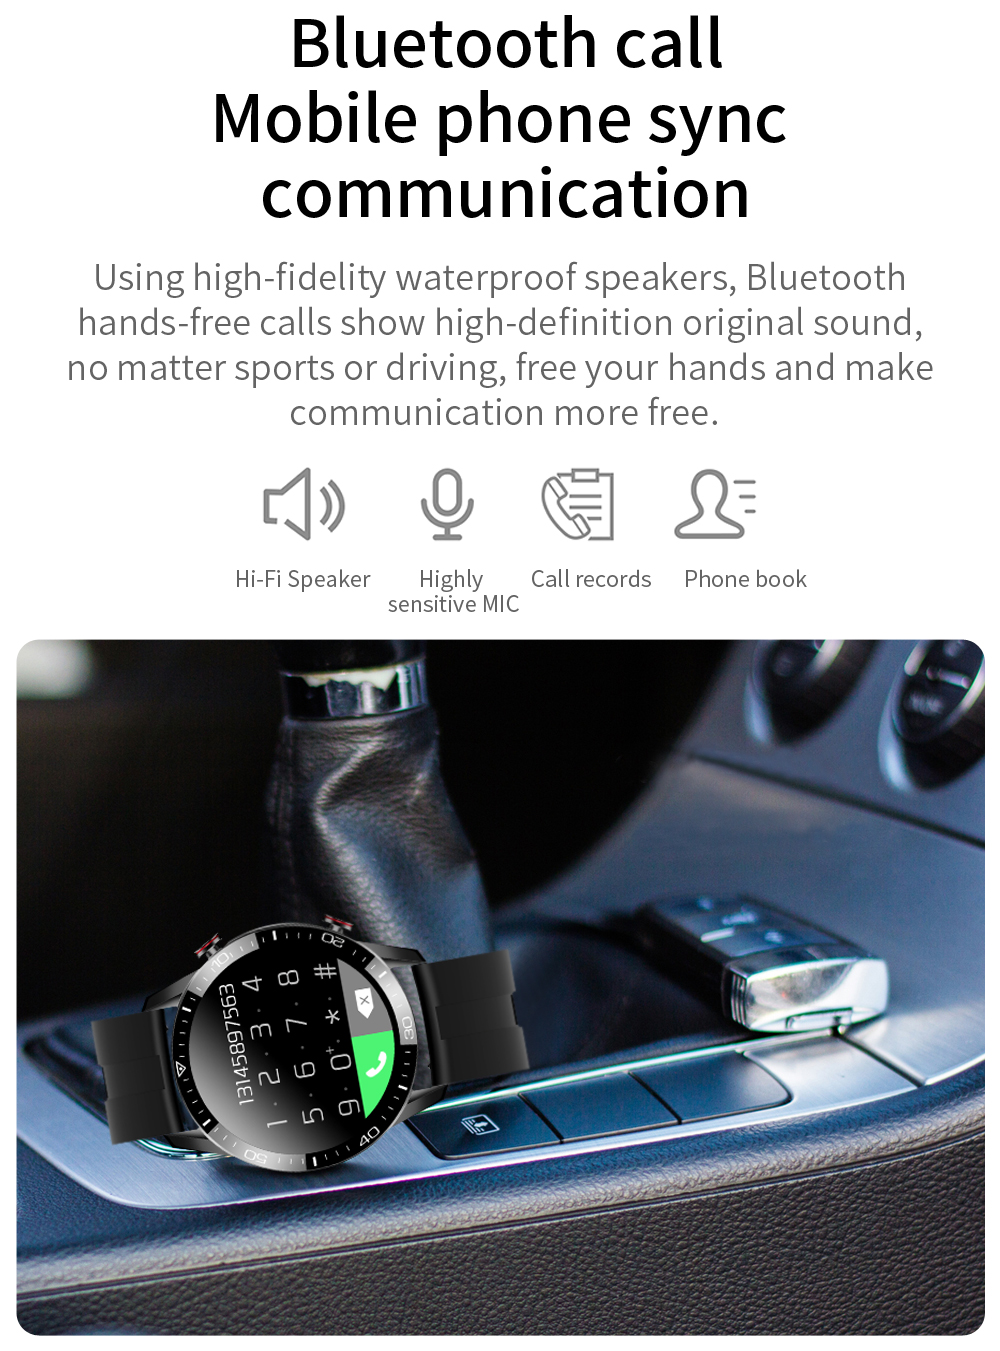 H708c35af62784909a28494f35ff41e7ah New Smart Watch Men Bluetooth Call TK2-8 IP68 Waterproof Heart Rate Blood Pressure SmartWatch Fitness Tracker Sports Android IOS